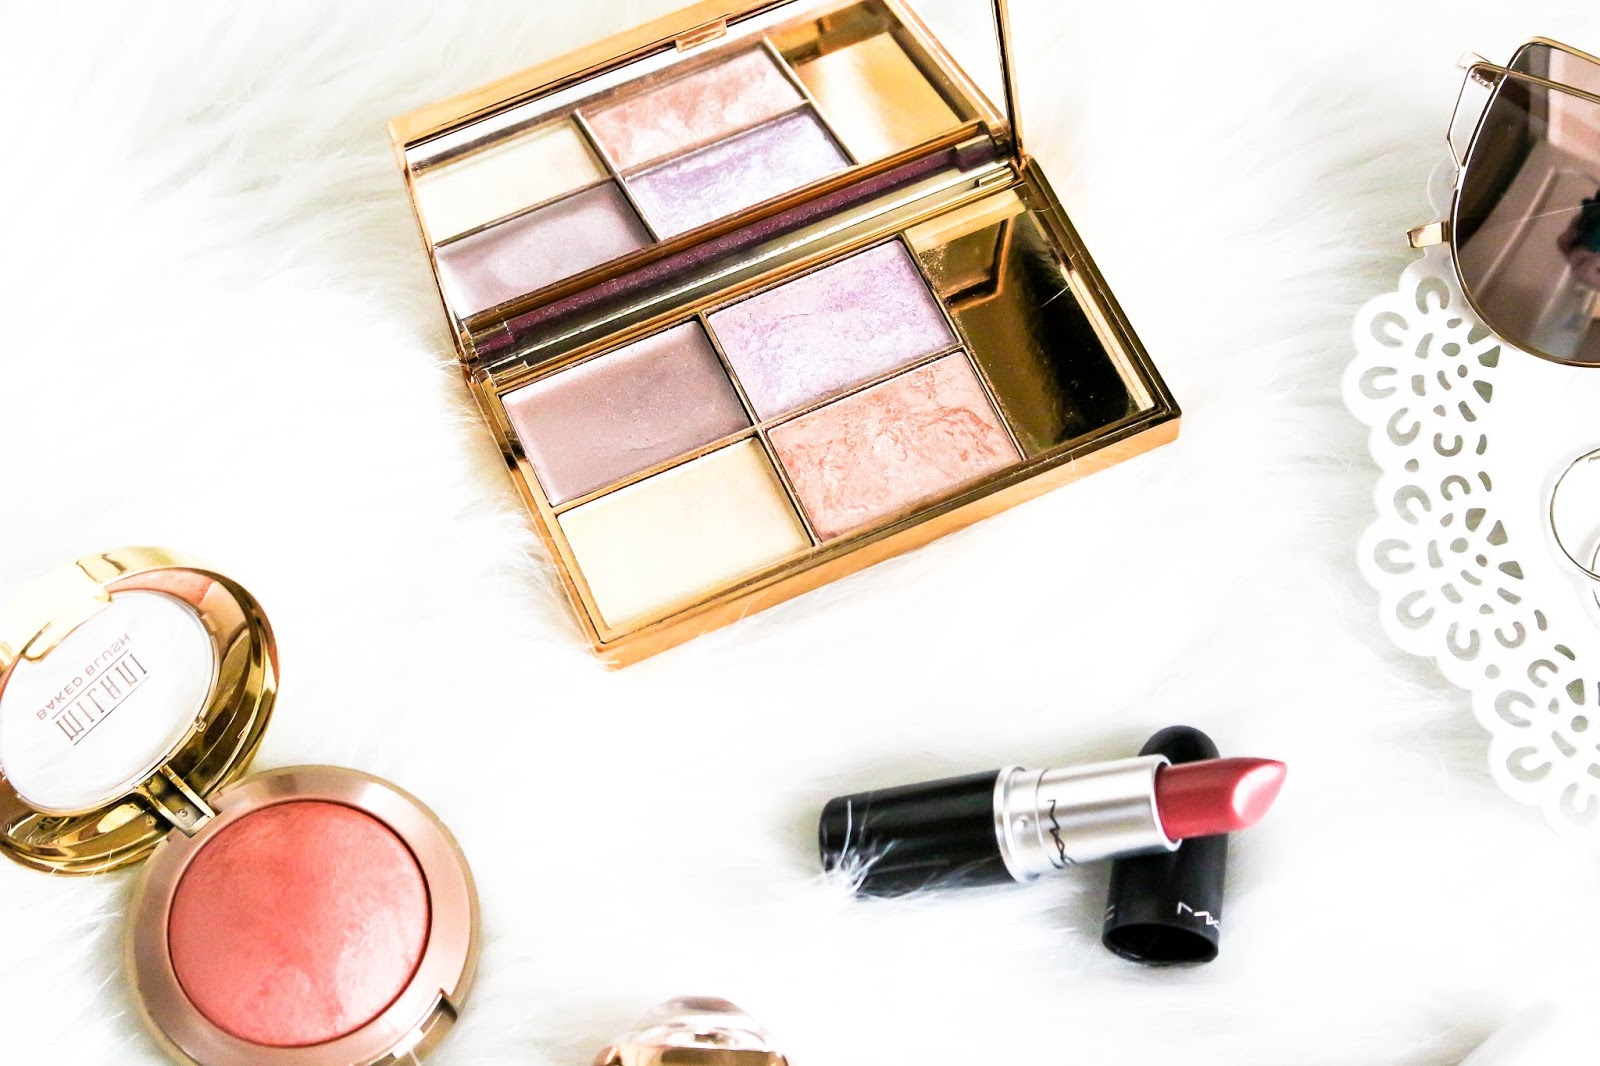 Sleek Solstice, Milani Luminoso blush and MAC lipstick Fanfare